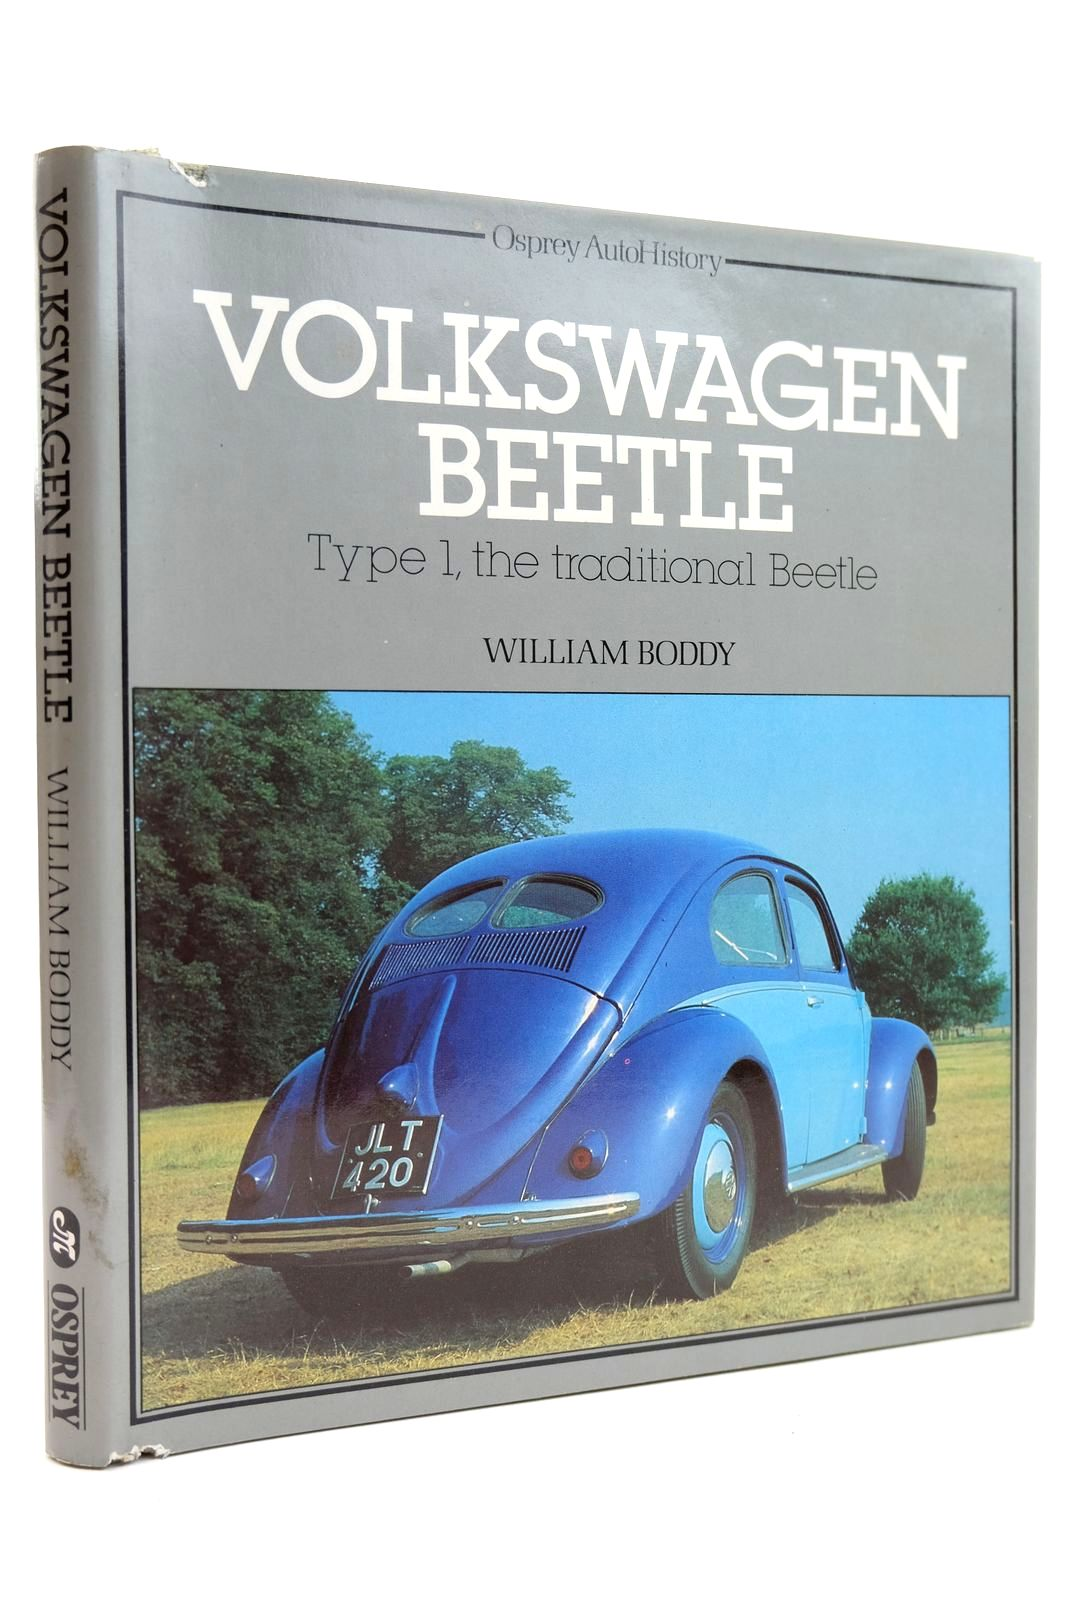 Photo of VOLKSWAGEN BEETLE TYPE 1, THE TRADITIONAL BEETLE written by Boddy, William published by Osprey Publications Ltd (STOCK CODE: 2131825)  for sale by Stella & Rose's Books